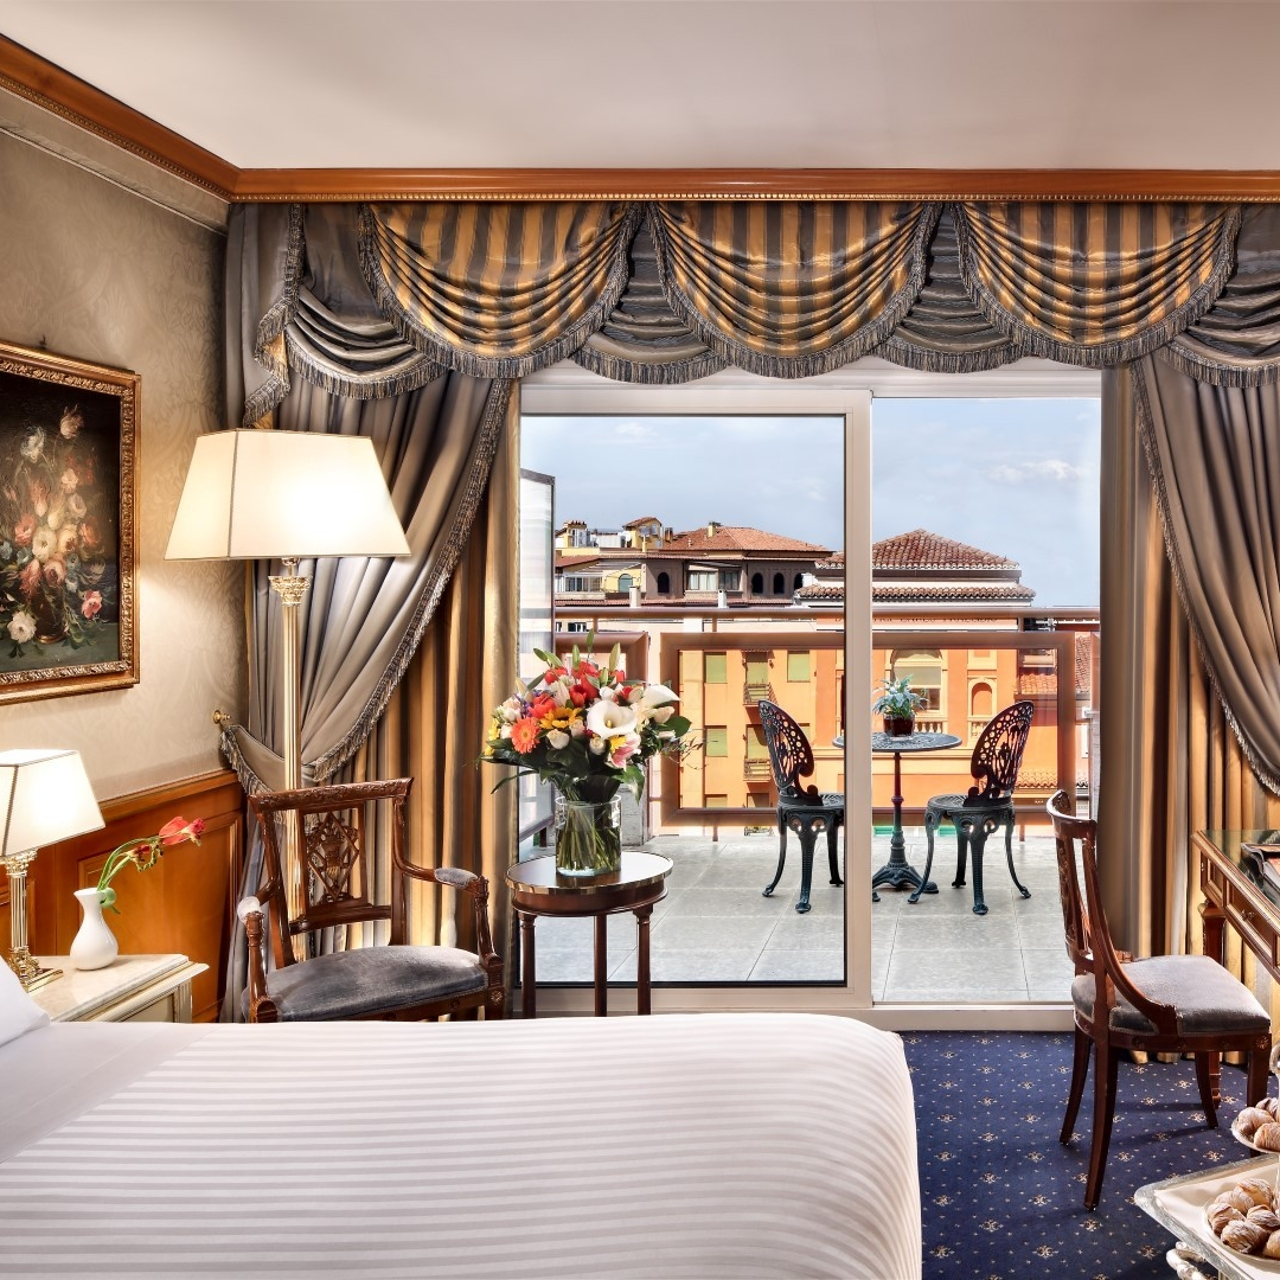 Parco Dei Principi Grand Hotel Spa Roma Italy At Hrs With Free Services